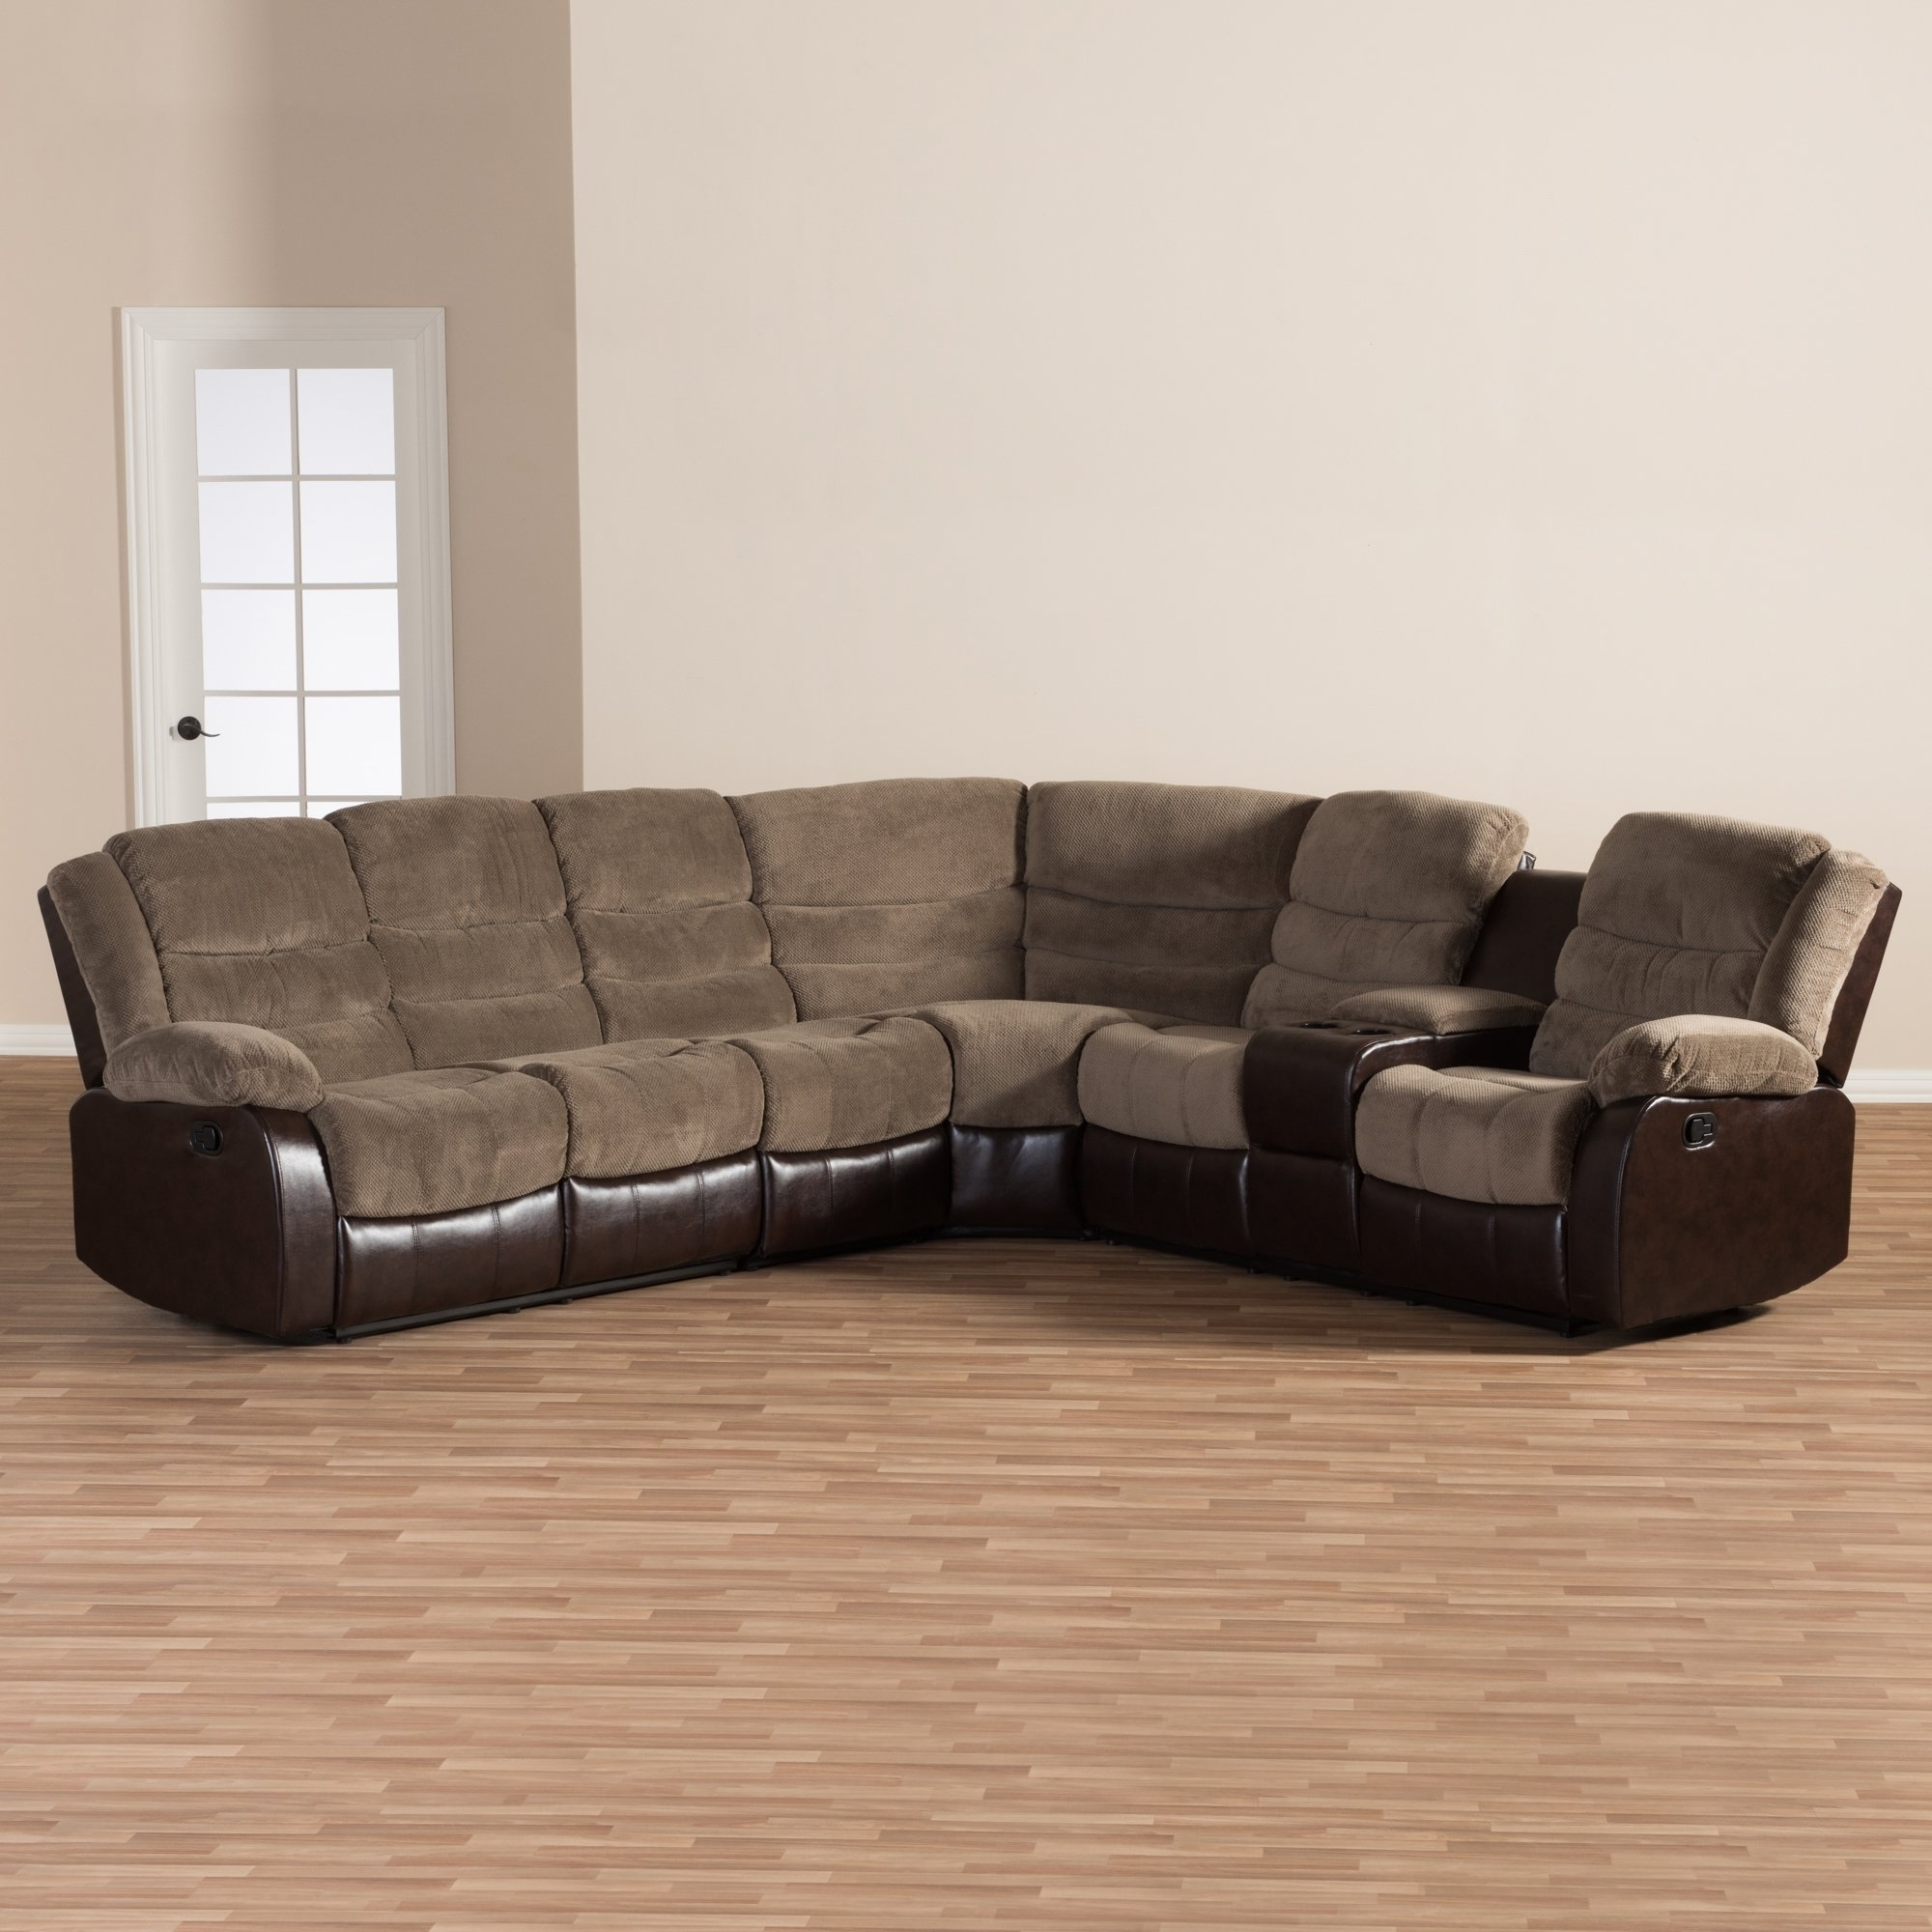 Most Recently Released Braxton Leather Sectional Sofa • Leather Sofa For Braxton Sectional Sofas (View 15 of 20)